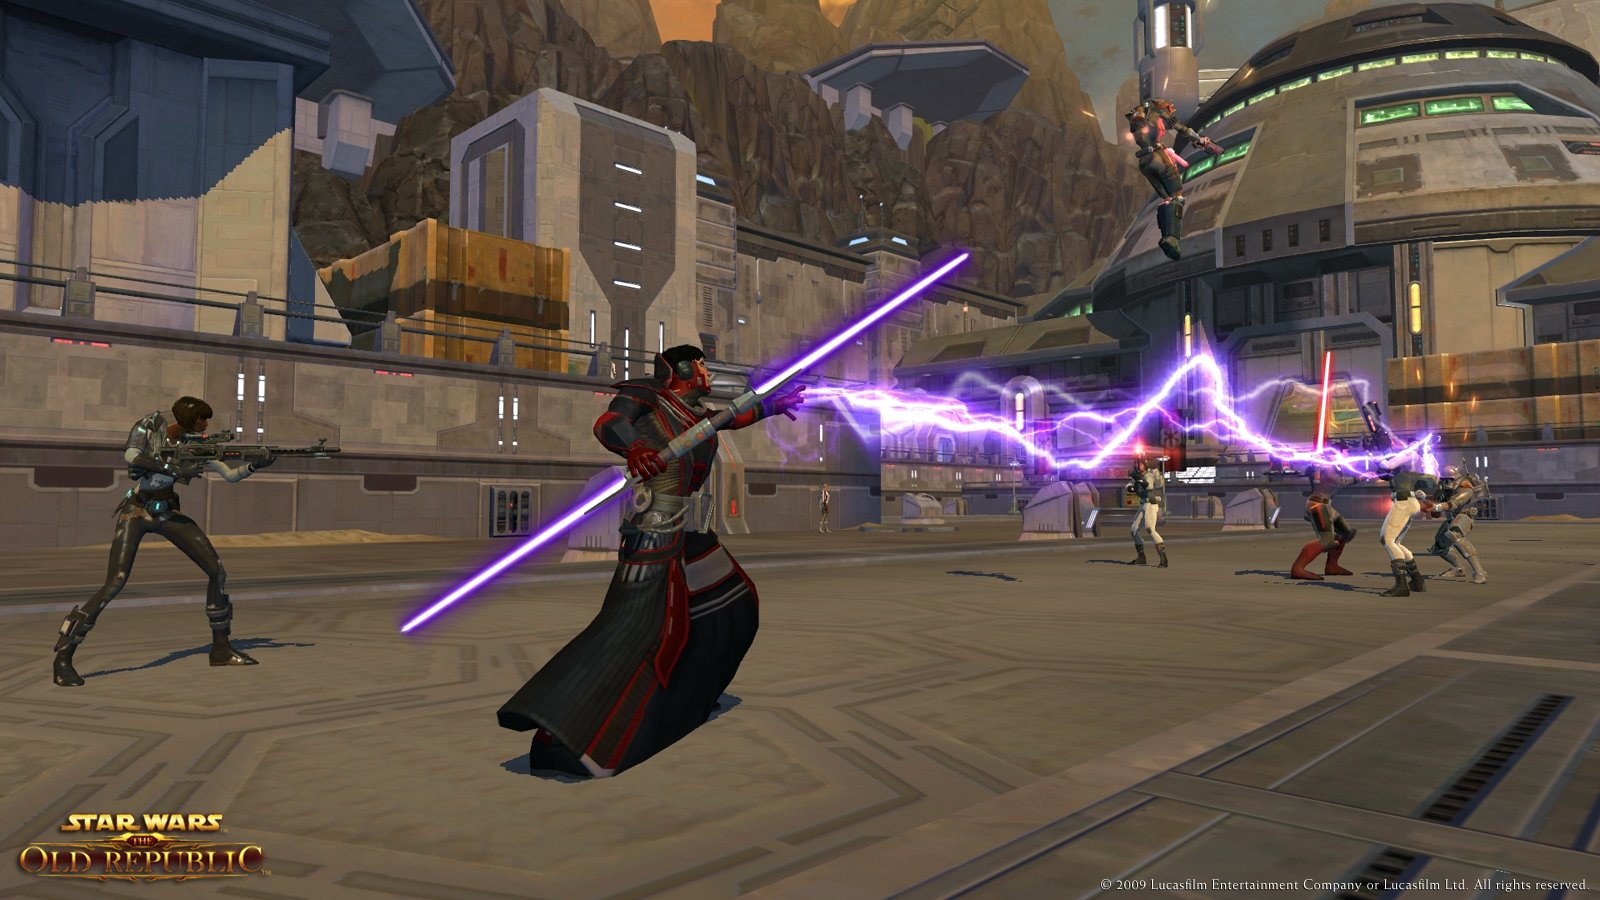 Star Wars: The Old Republic presenta al Guerrero Sith [Trailer]